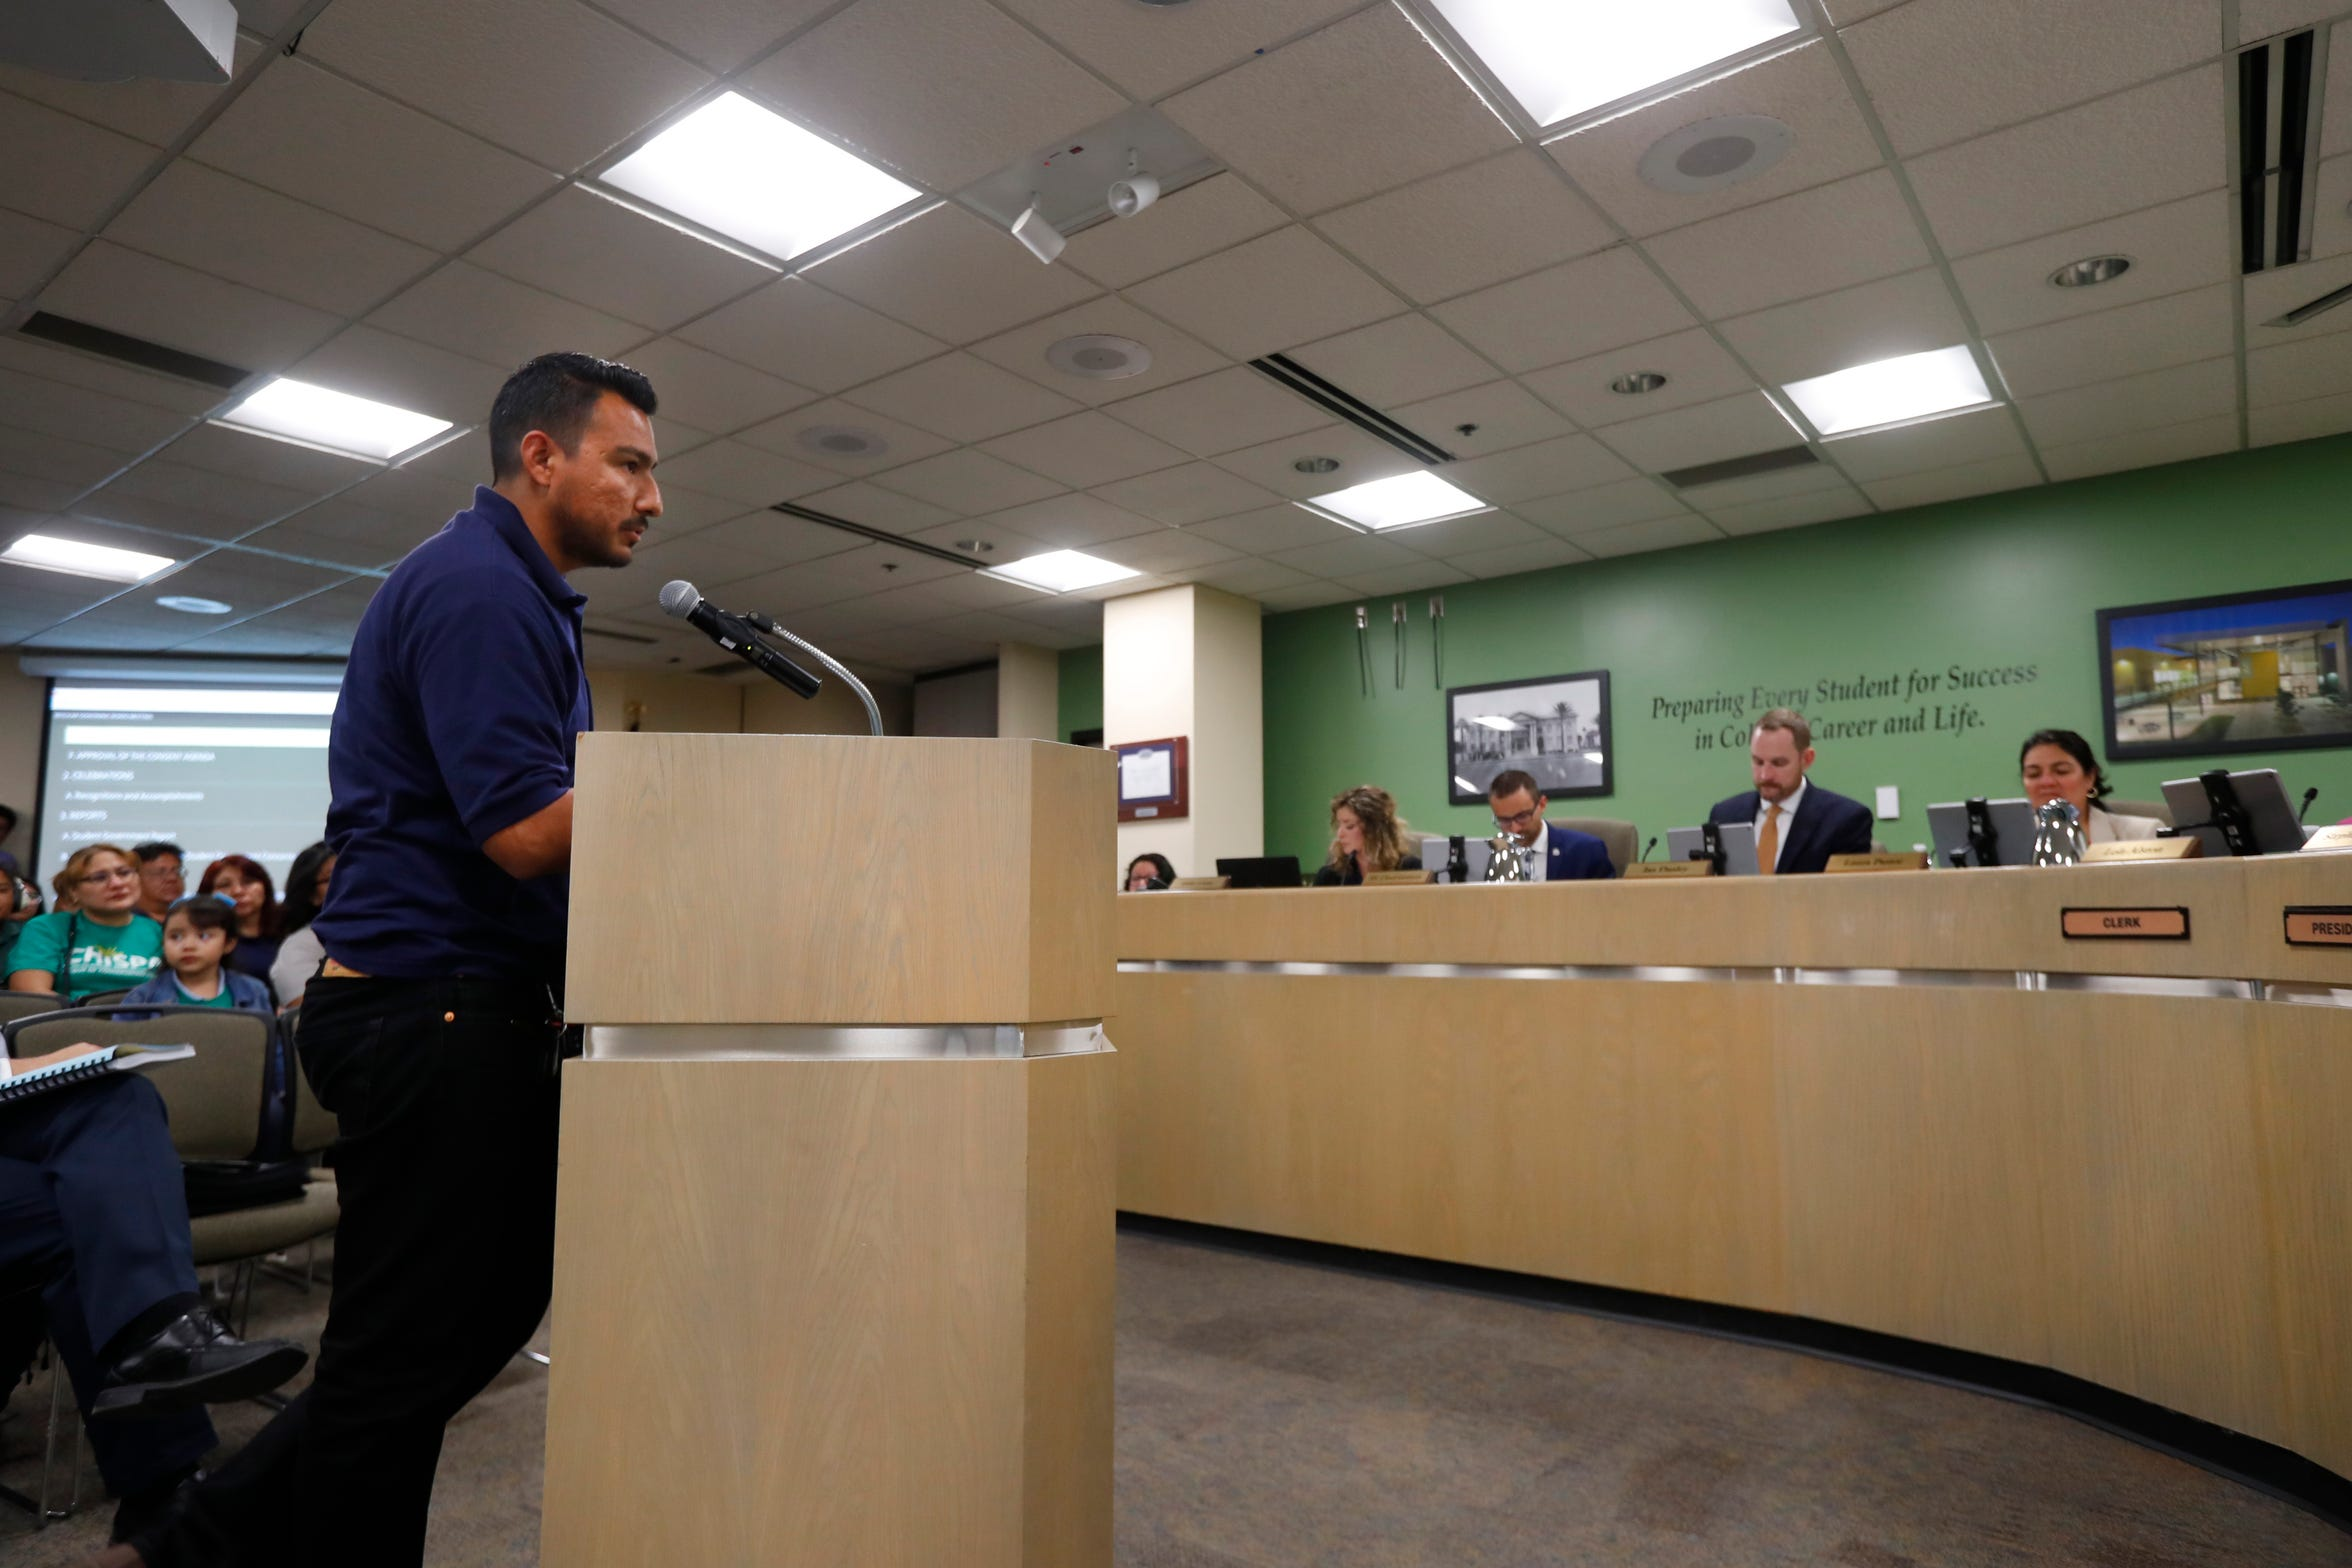 Julio Zuniga speaks in support of an electric school bus during a Phoenix Union High School District governing board meeting in Phoenix on April 11, 2019.